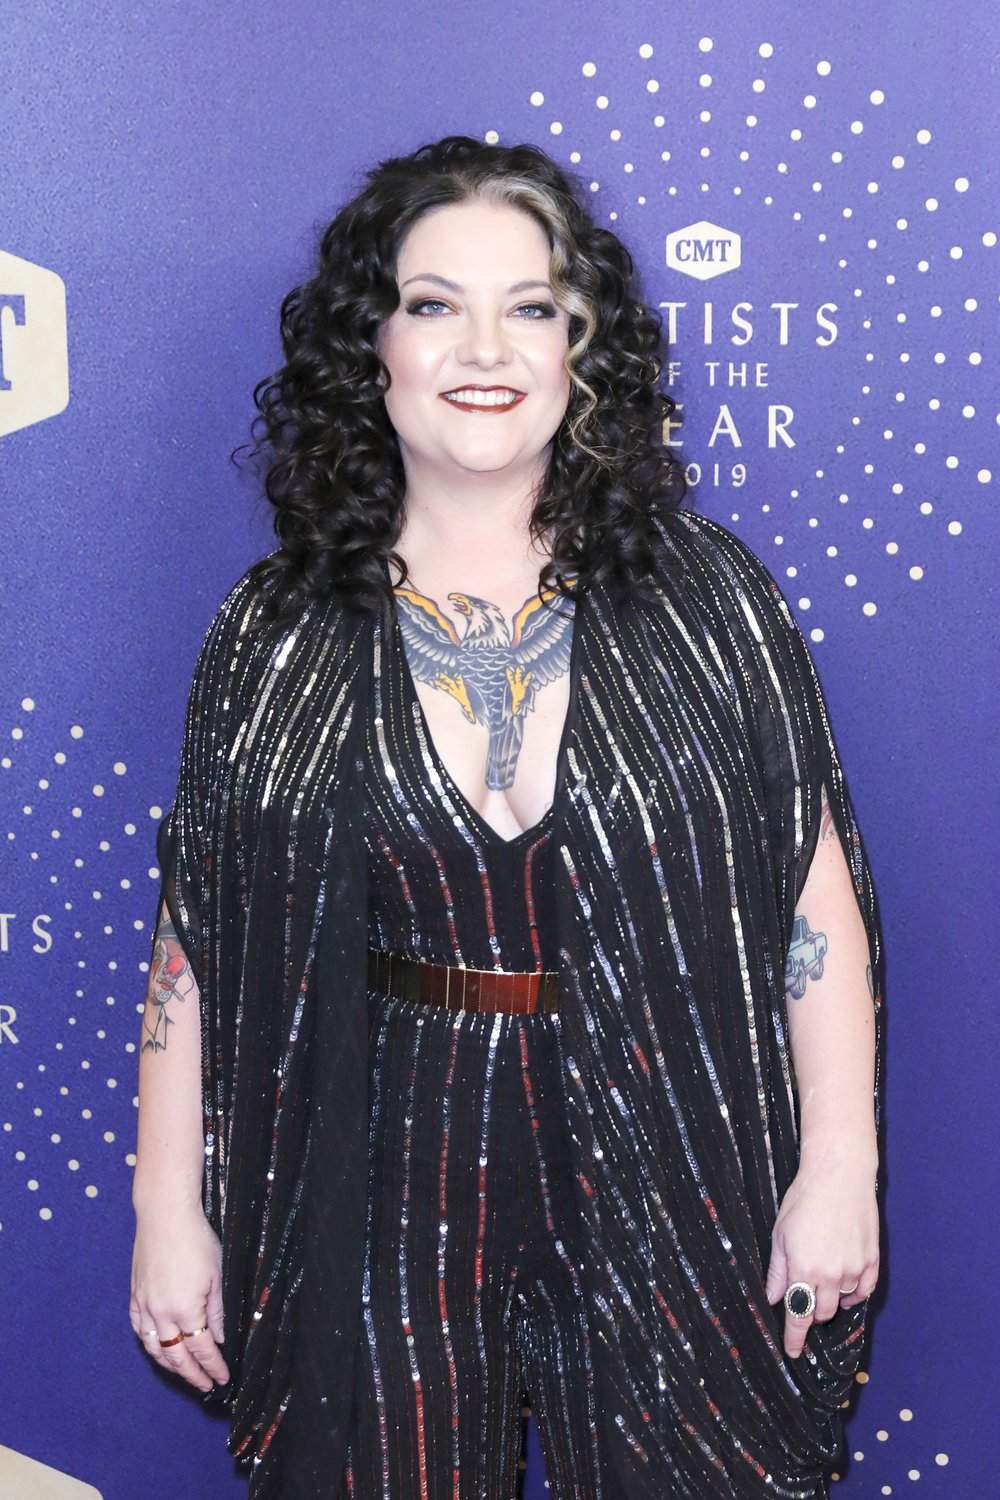 Ashley McBryde, the Arkansan and rising country music star, did a livestream concert recently and fans can still watch it on her website, ashleymcbryde.com.  (AP file photo/Invision/Al Wagner)